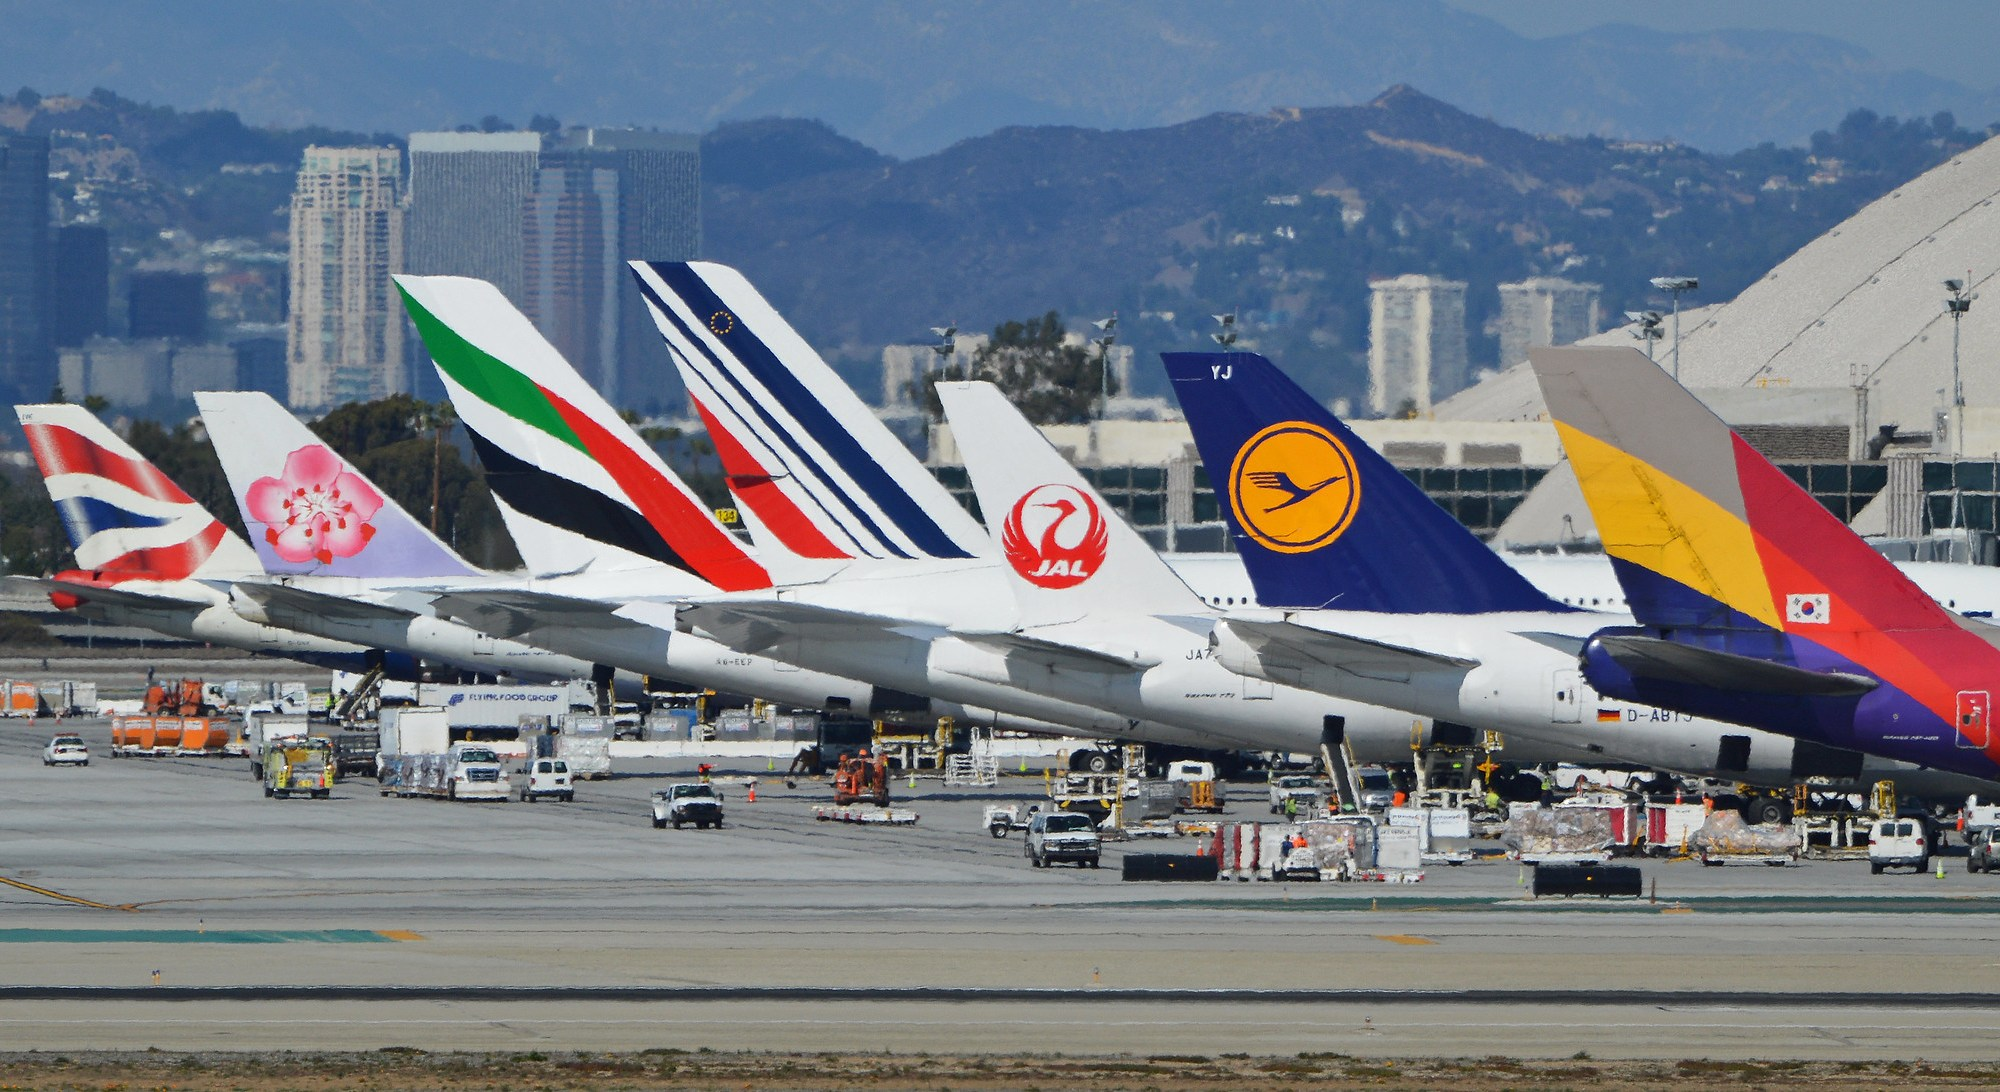 airplanes lined up at the airport